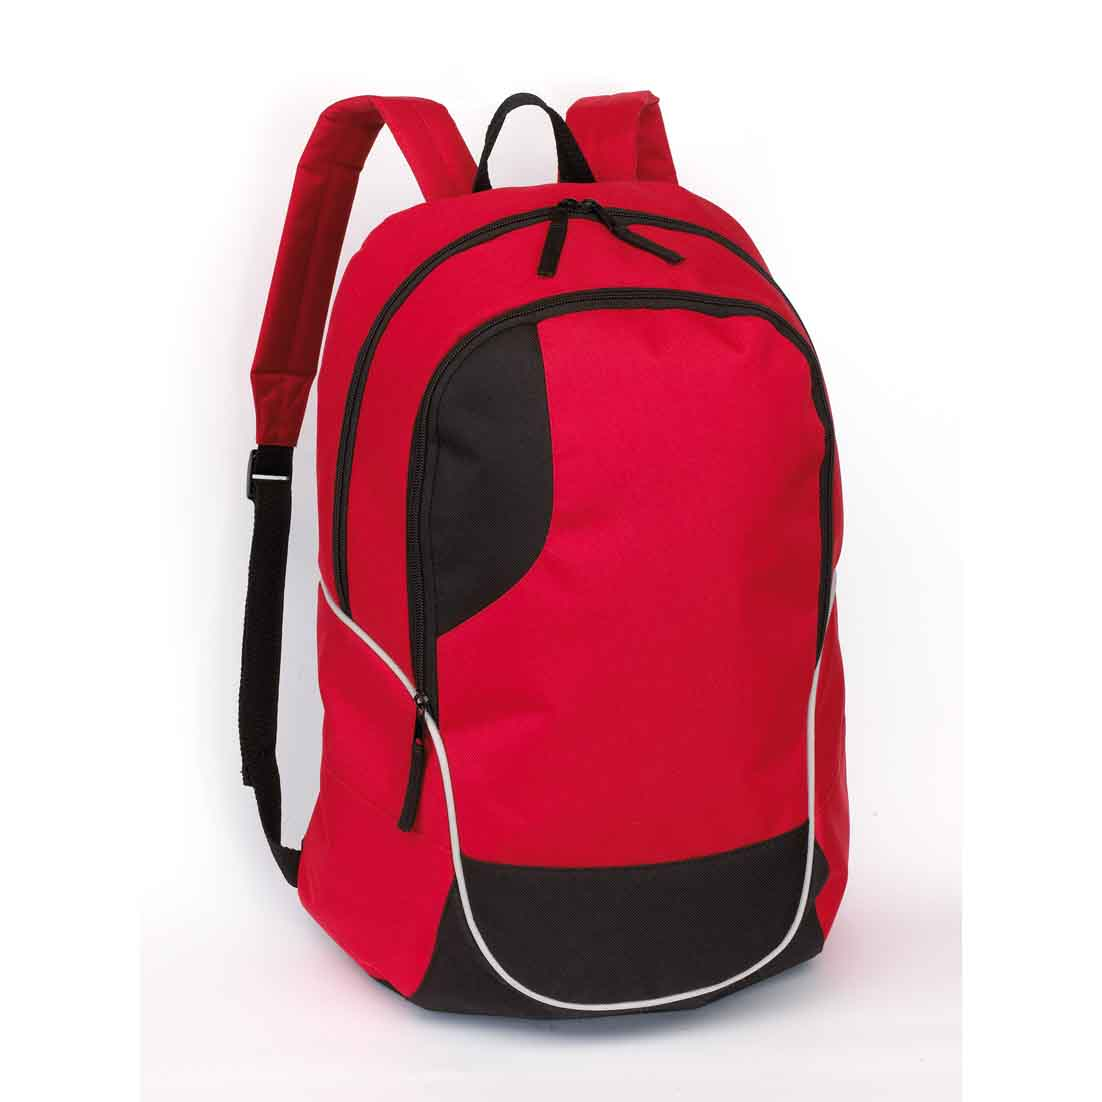 "Backpack ""Curve"": zippered main compartment, zippered front compartment, carrying loop, padded shoulder straps and back. - red/black ins-0819530"